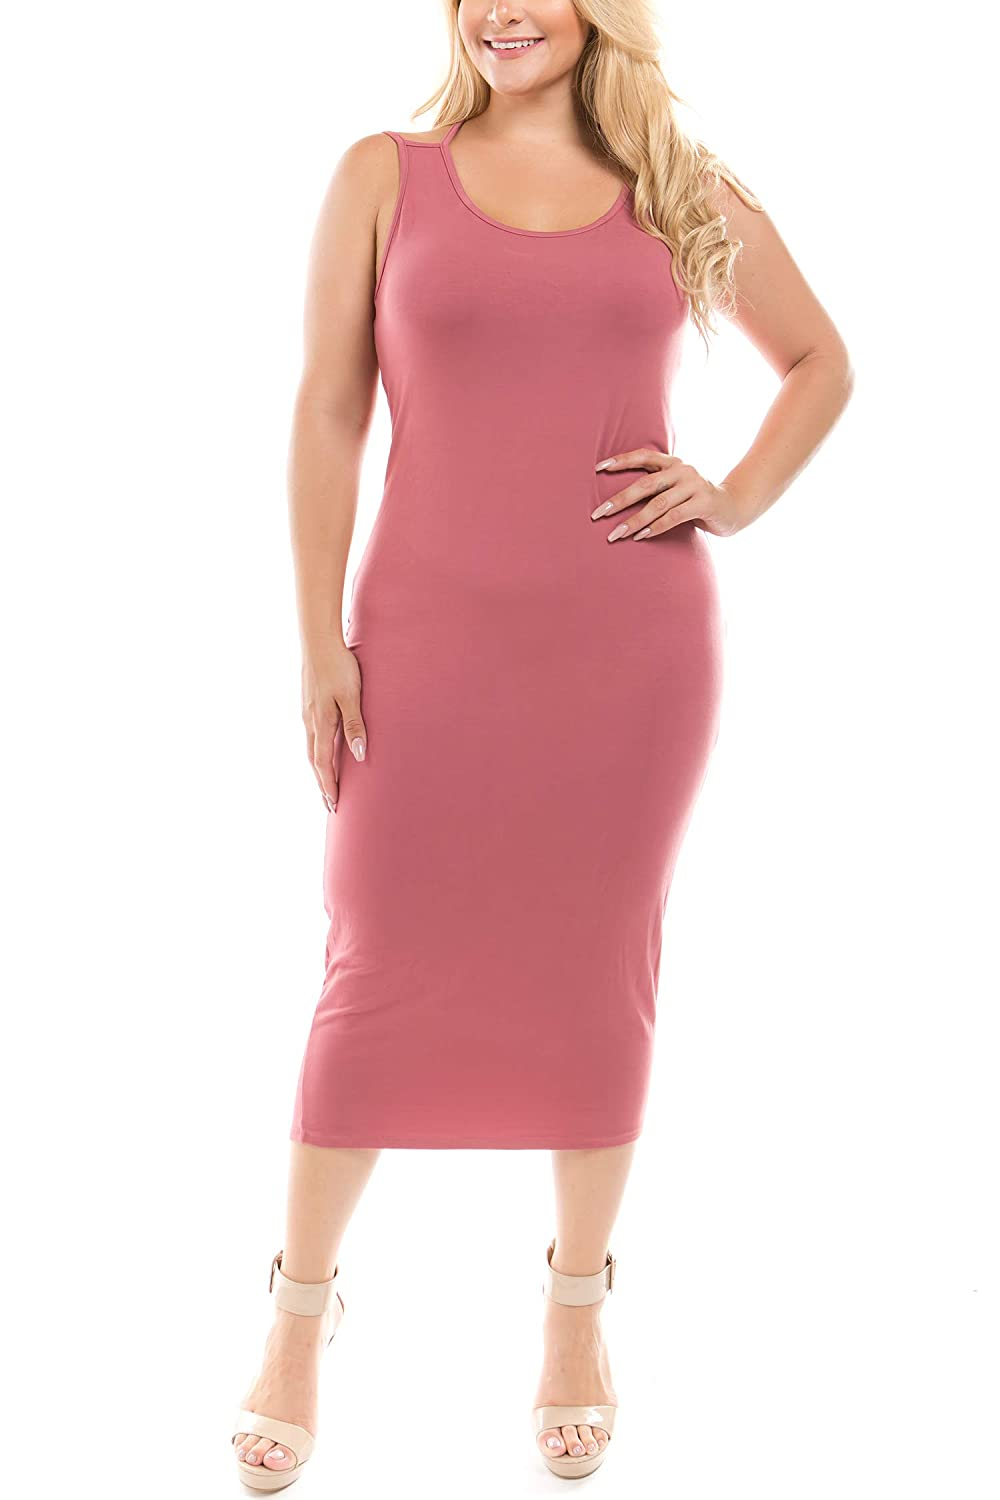 60868b48dbd11 Women s junior plus size sleeveless solid body contouring midi length dress  with back details. Available sizes  1X